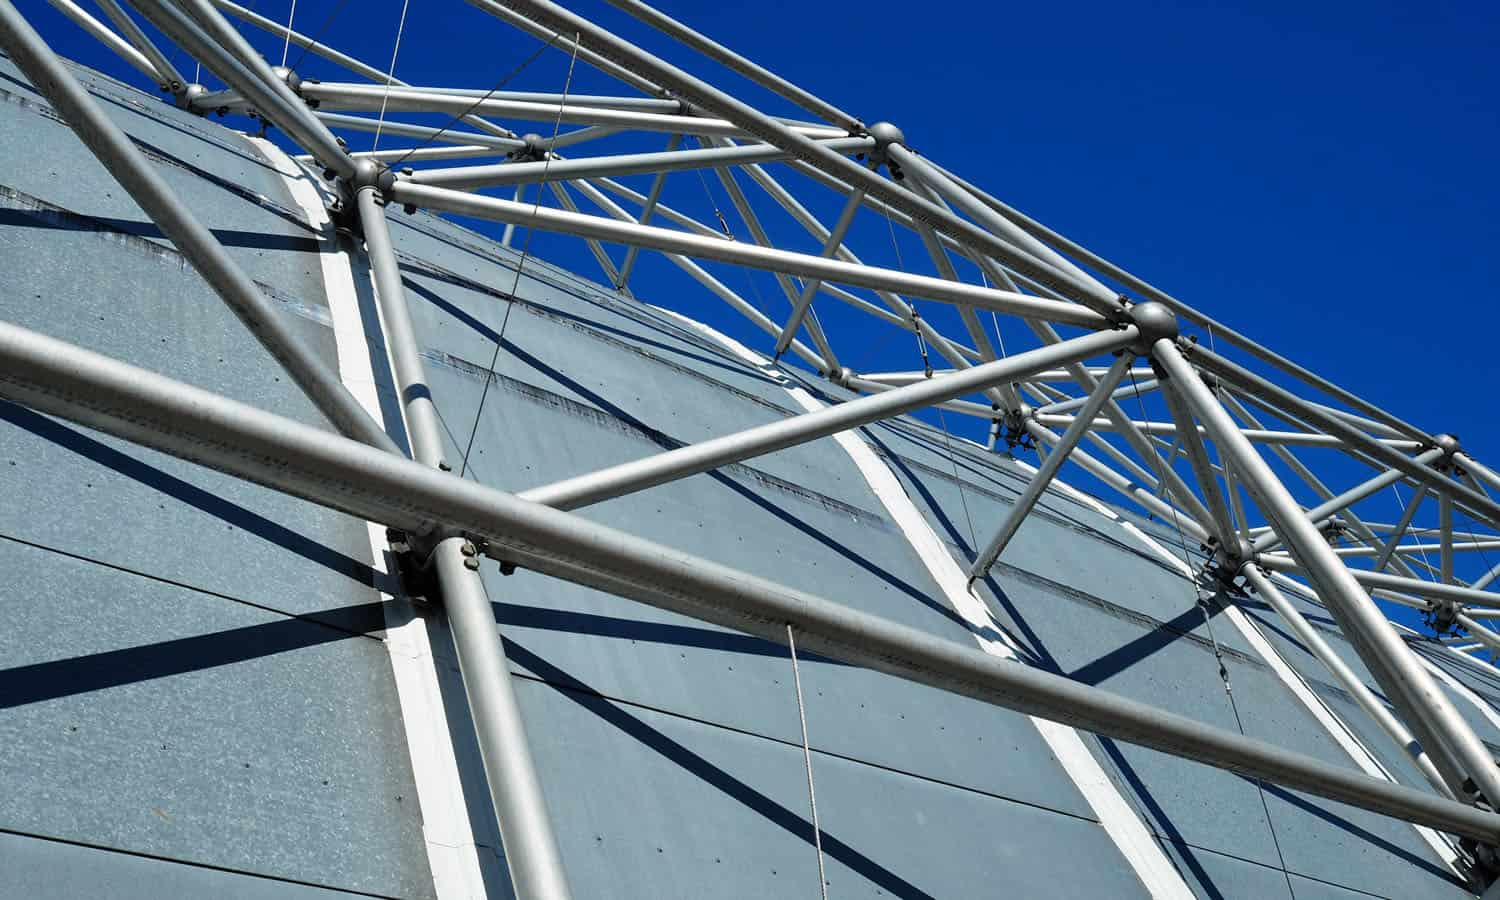 Detail of the metal structure against the sky